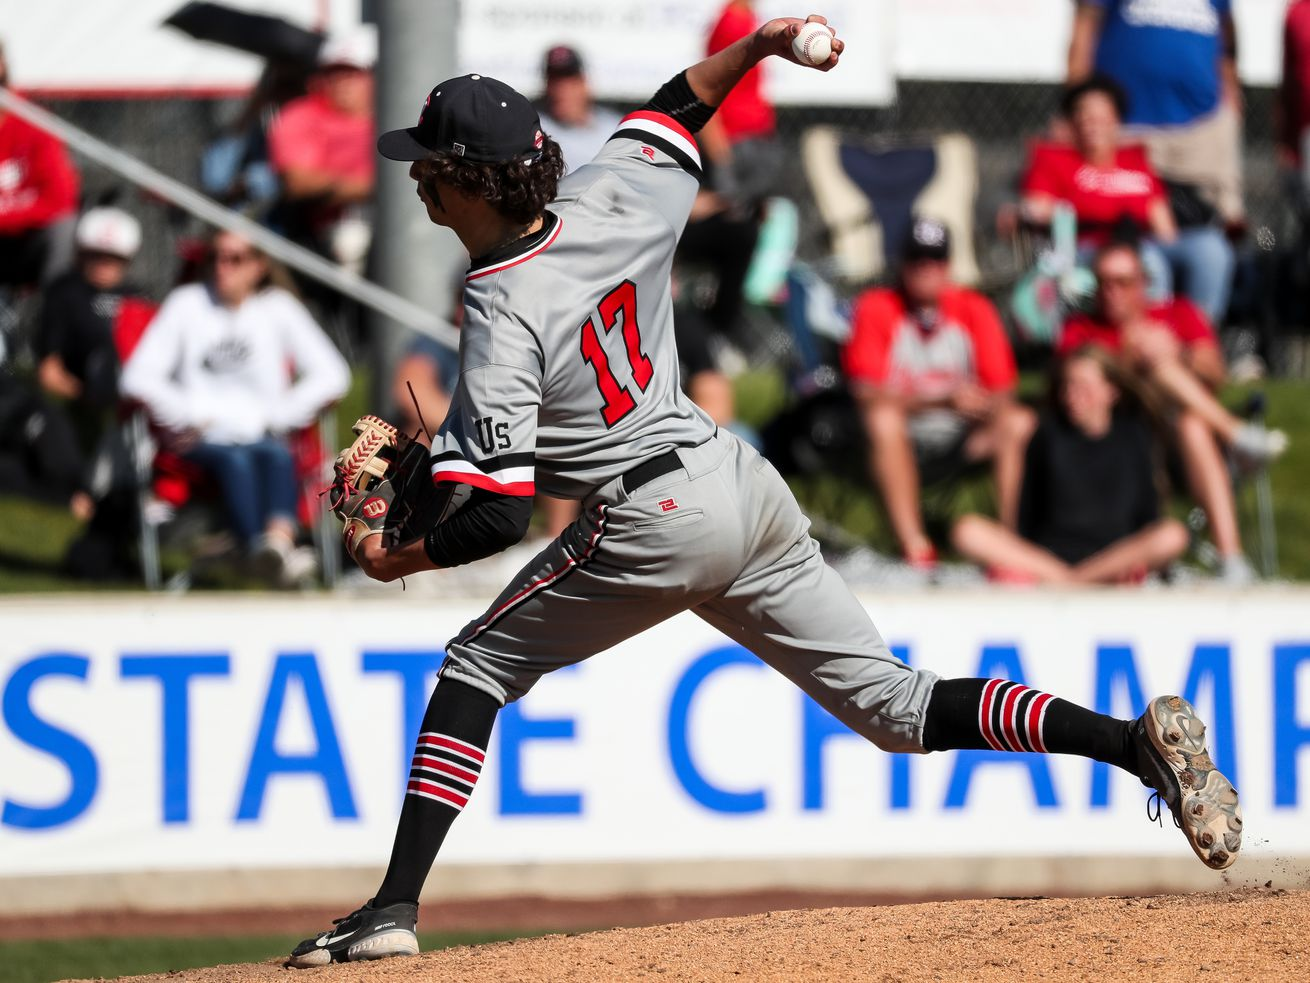 High school baseball: American Fork rolls past rival Pleasant Grove in battle of 6A unbeatens